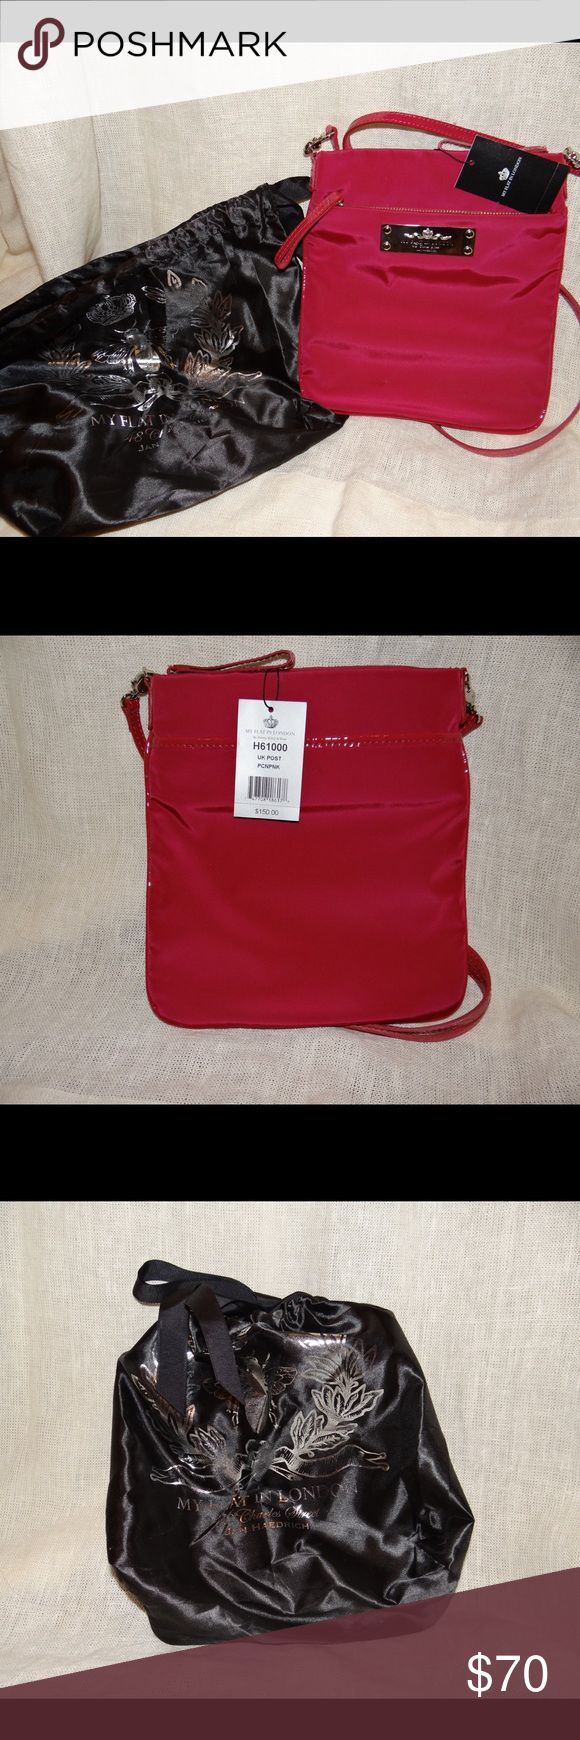 My Flat In London crossbody BRIGHTON New with tags from Brighton store maroon crossbody. Also comes with dust bag 🙂 ‼️ALL OFFERS CONSIDERED‼️ Brighton Bags Crossbody Bags